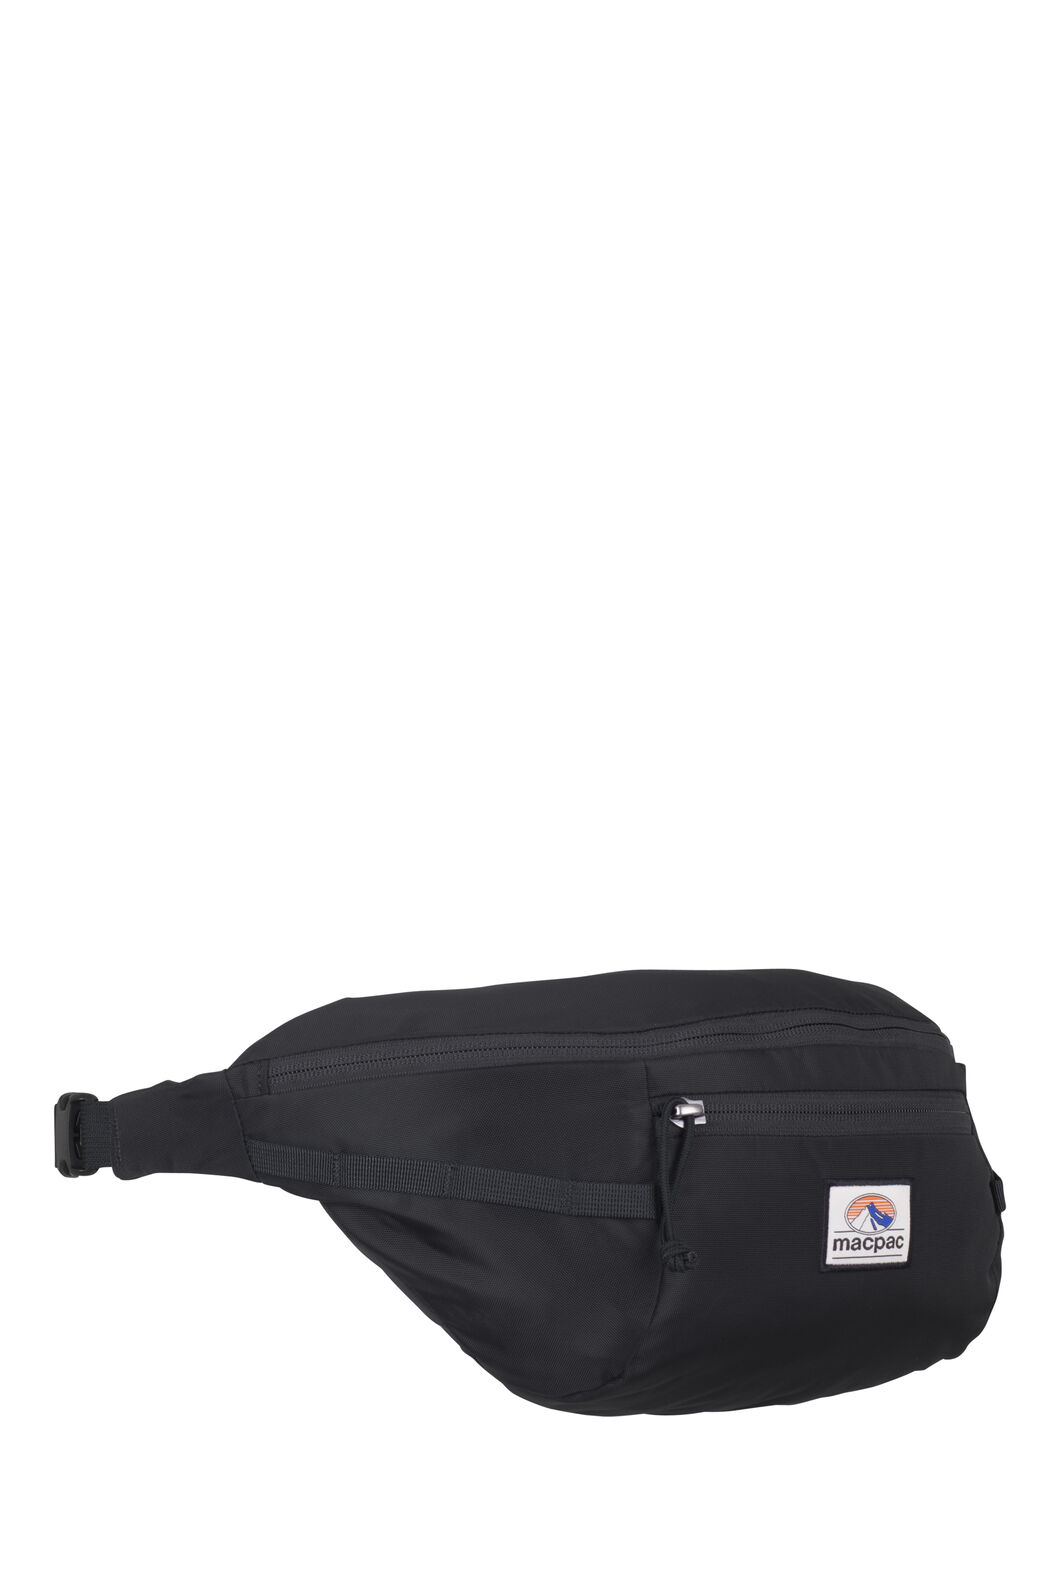 Macpac Wilderness Bumbag - Large, Black, hi-res